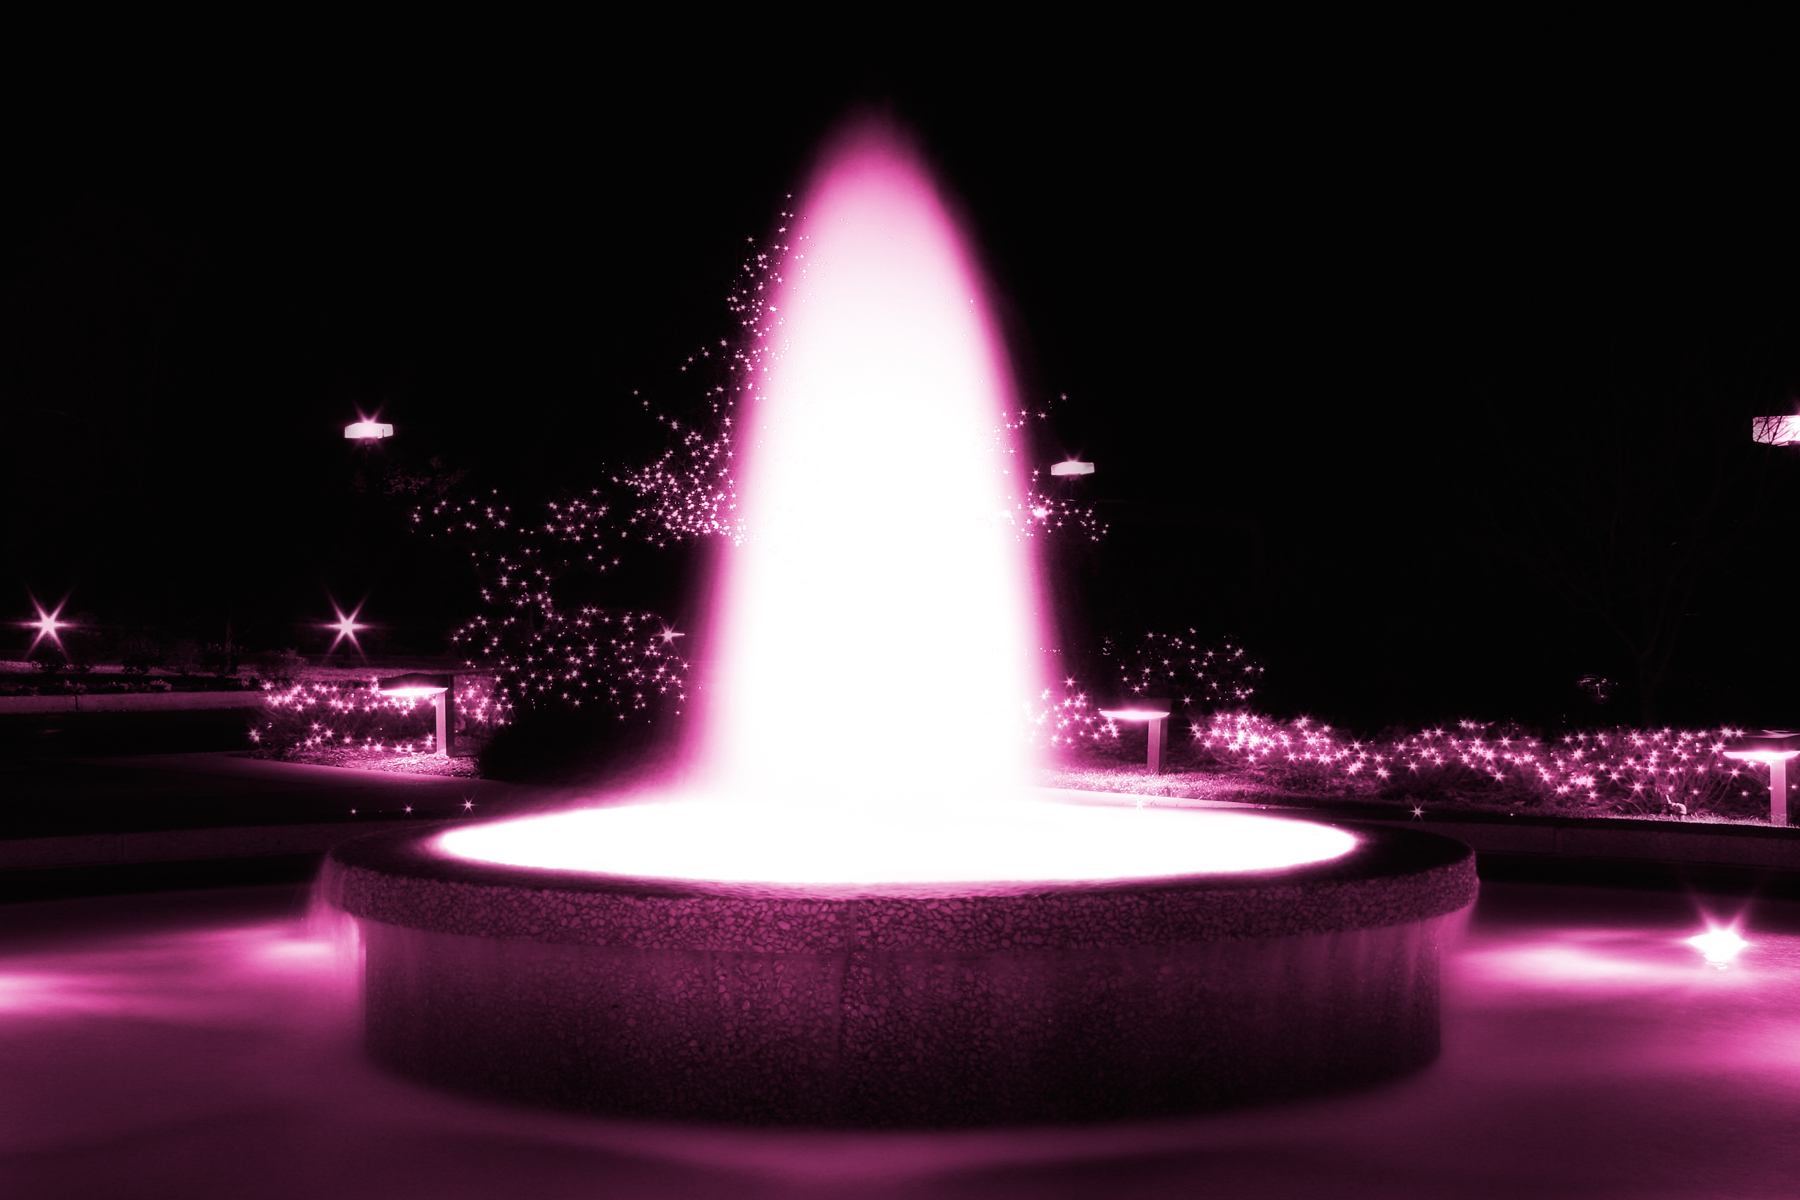 Pink Glowing Fountain, Abstract, Resource, Monotone, Night, HQ Photo